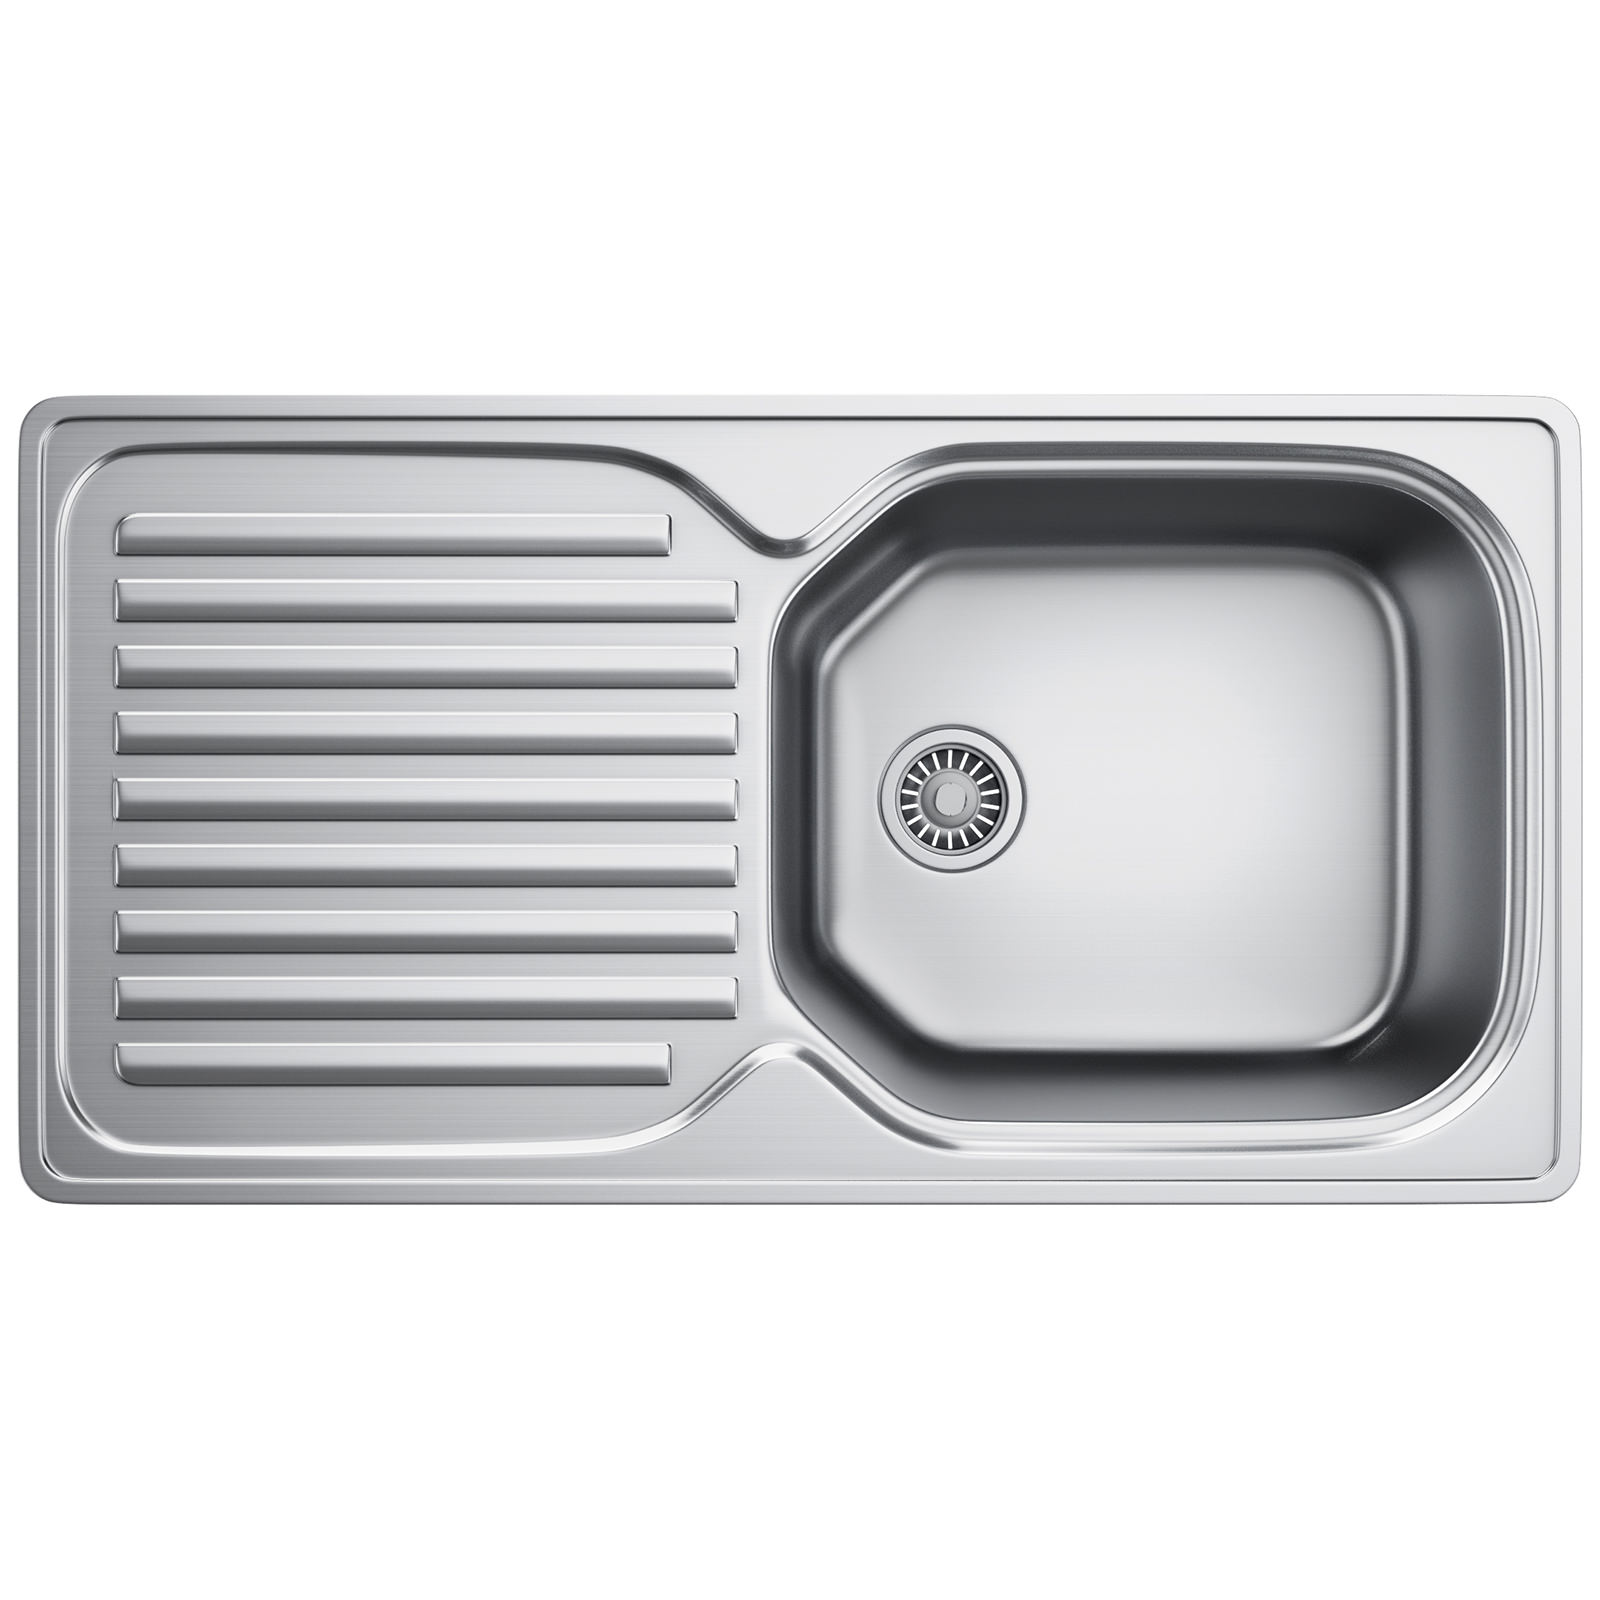 Franke Ss Sinks : Franke Elba ELN 611 96 Stainless Steel 1.0 Bowl Kitchen Inset Sink ...